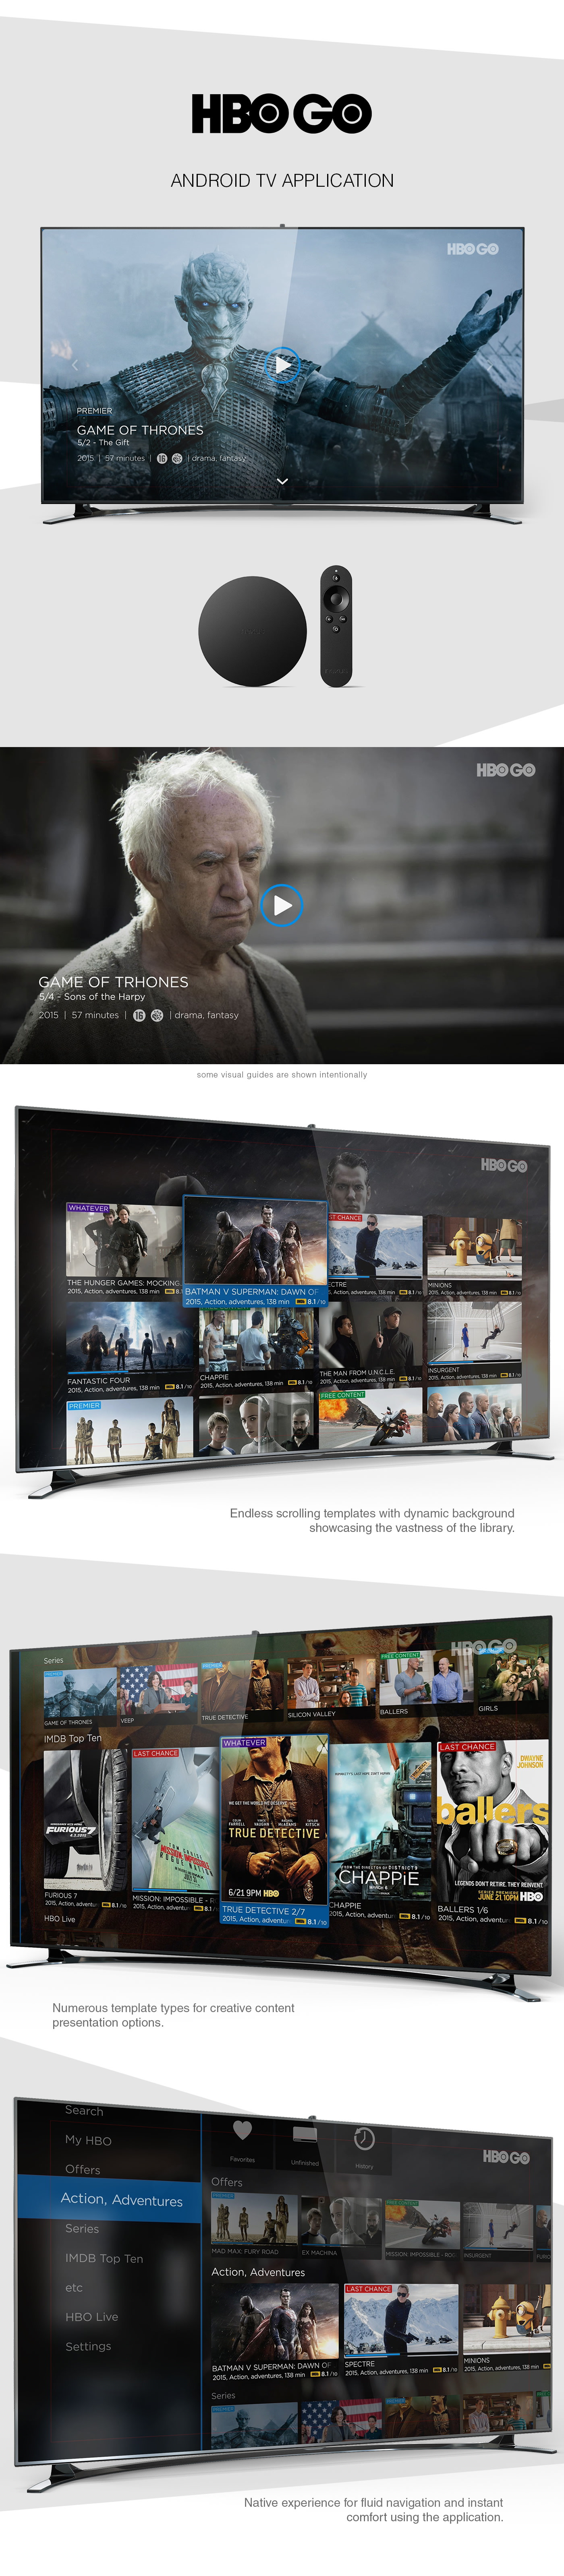 HBOGO - Android TV Application Design and Presentation - WNW